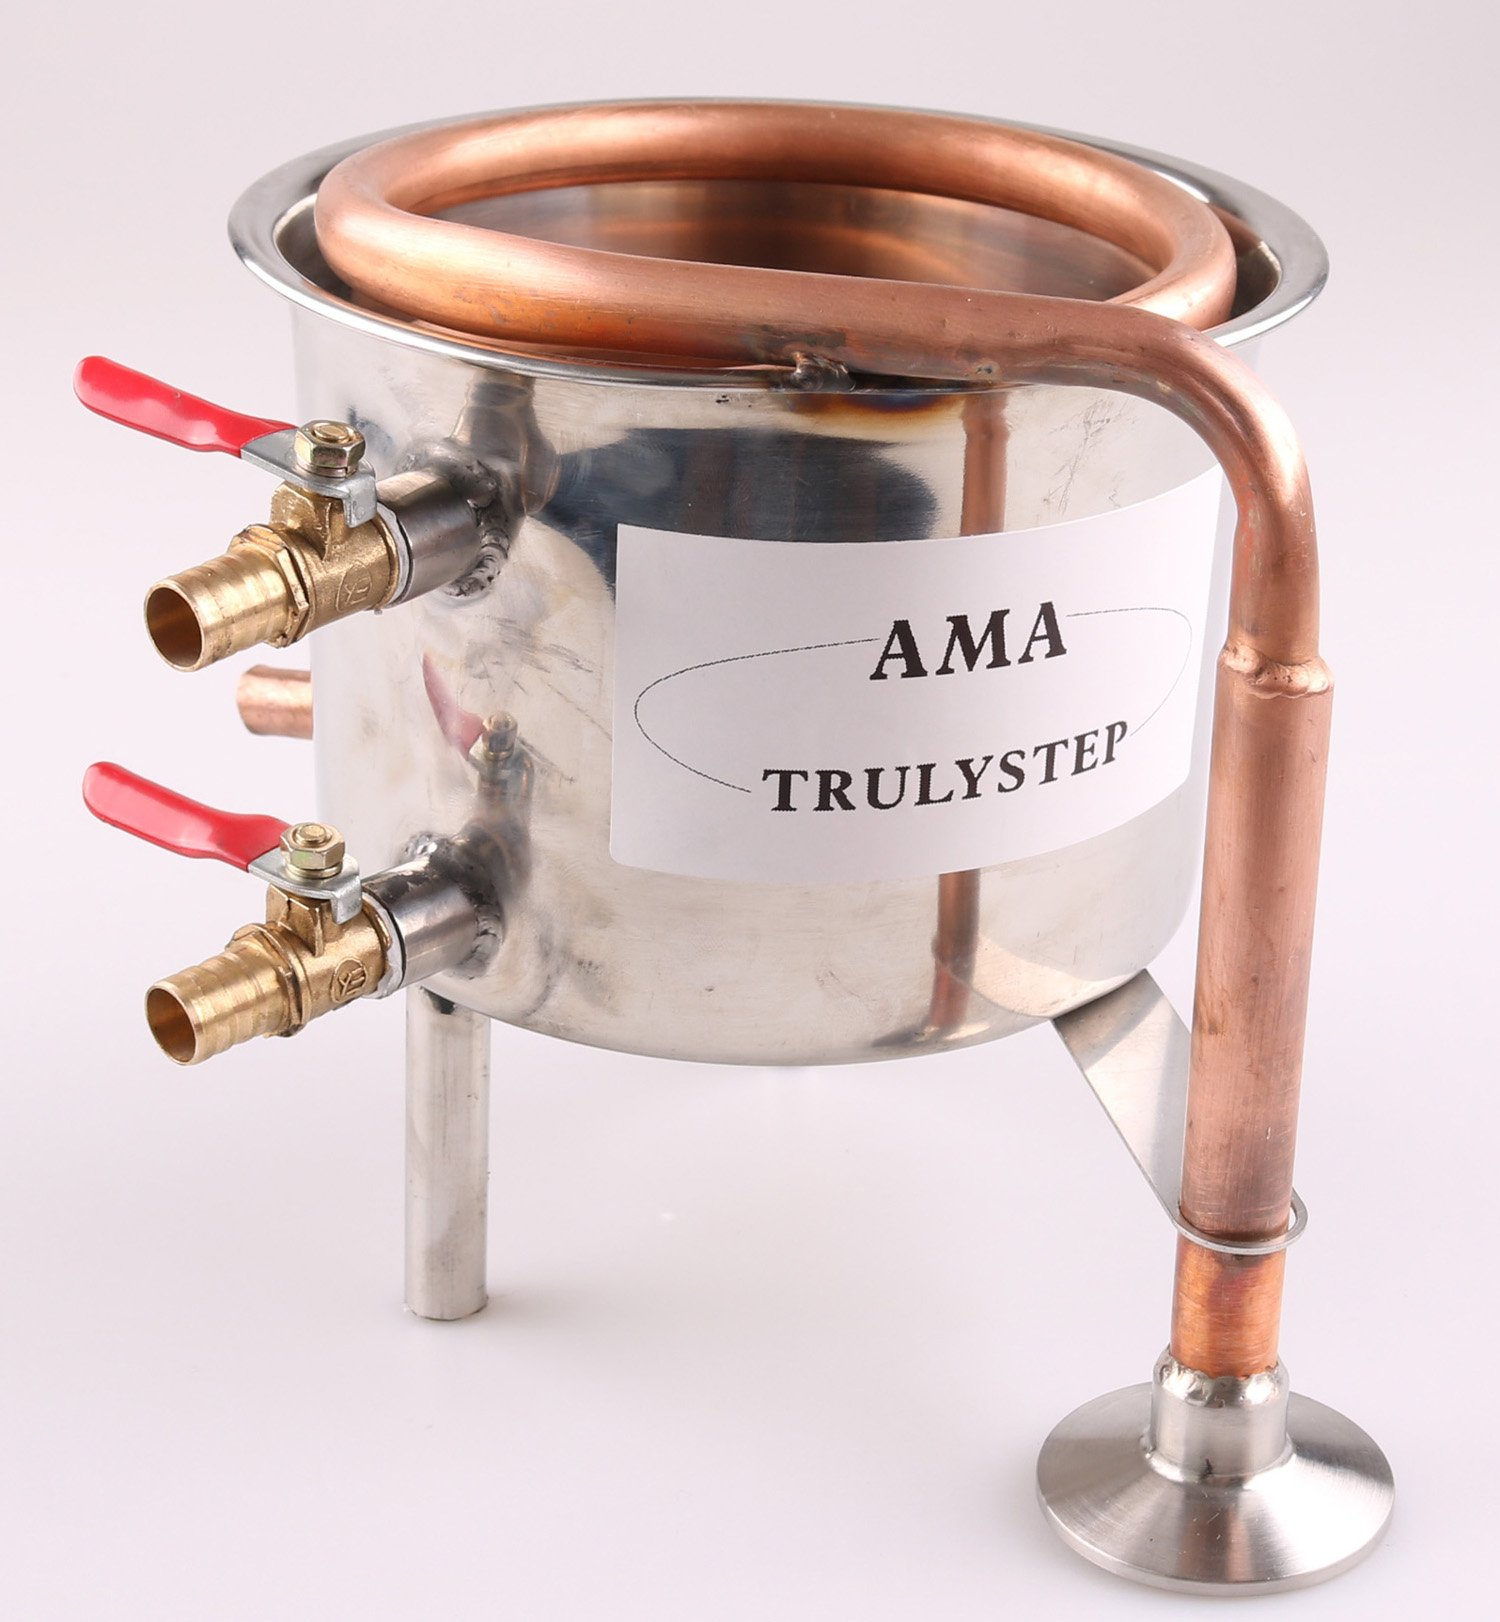 Spare Parts For 2 Pots Moonshine still / Distiller Brewing Kit : Stainless Steel / Copper Coil Cooling Pot (Copper, 2 Gallon 10 Litres)